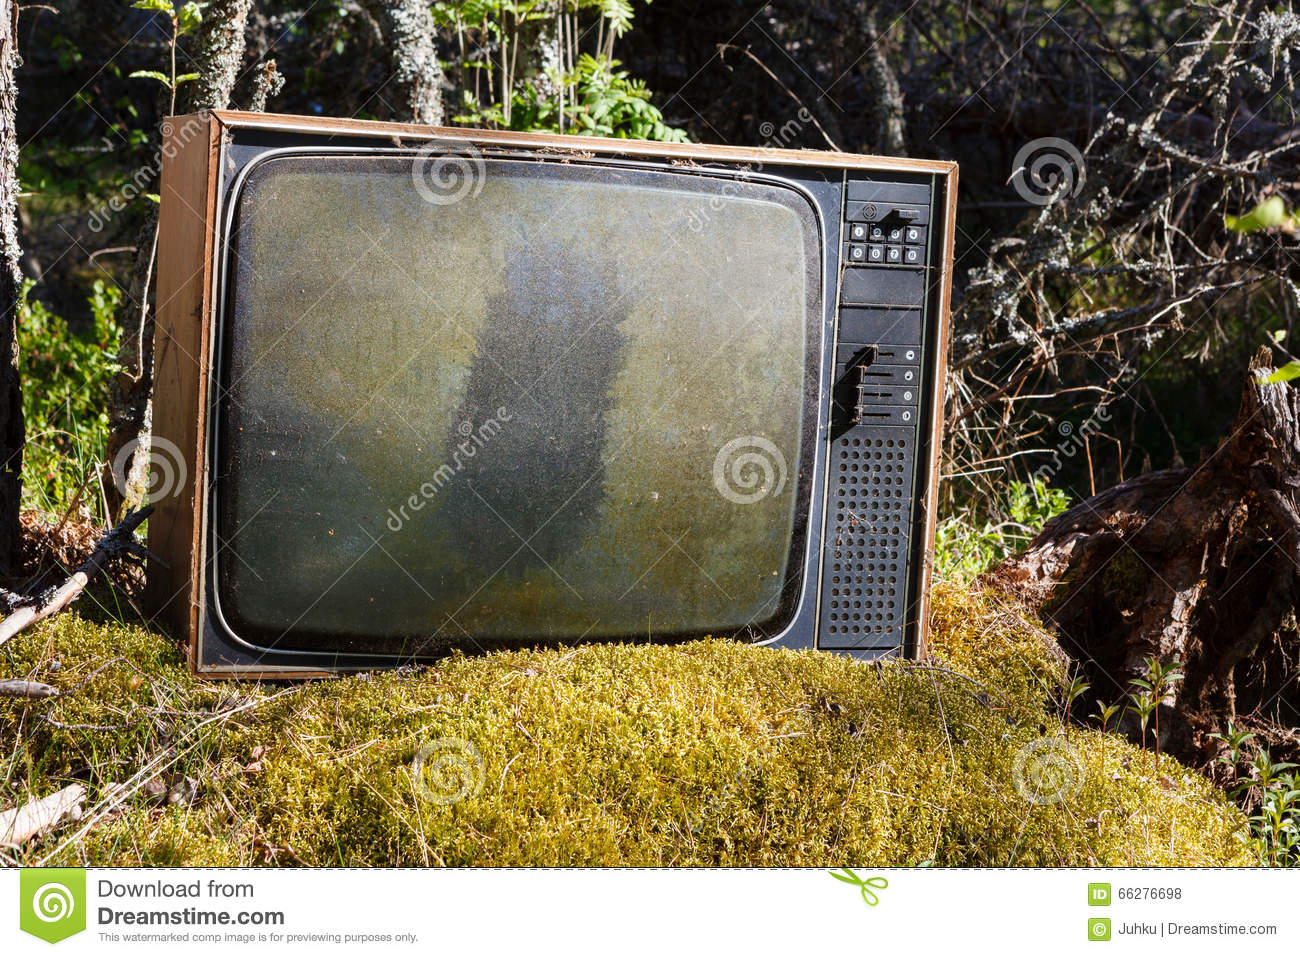 Old analog television in forest